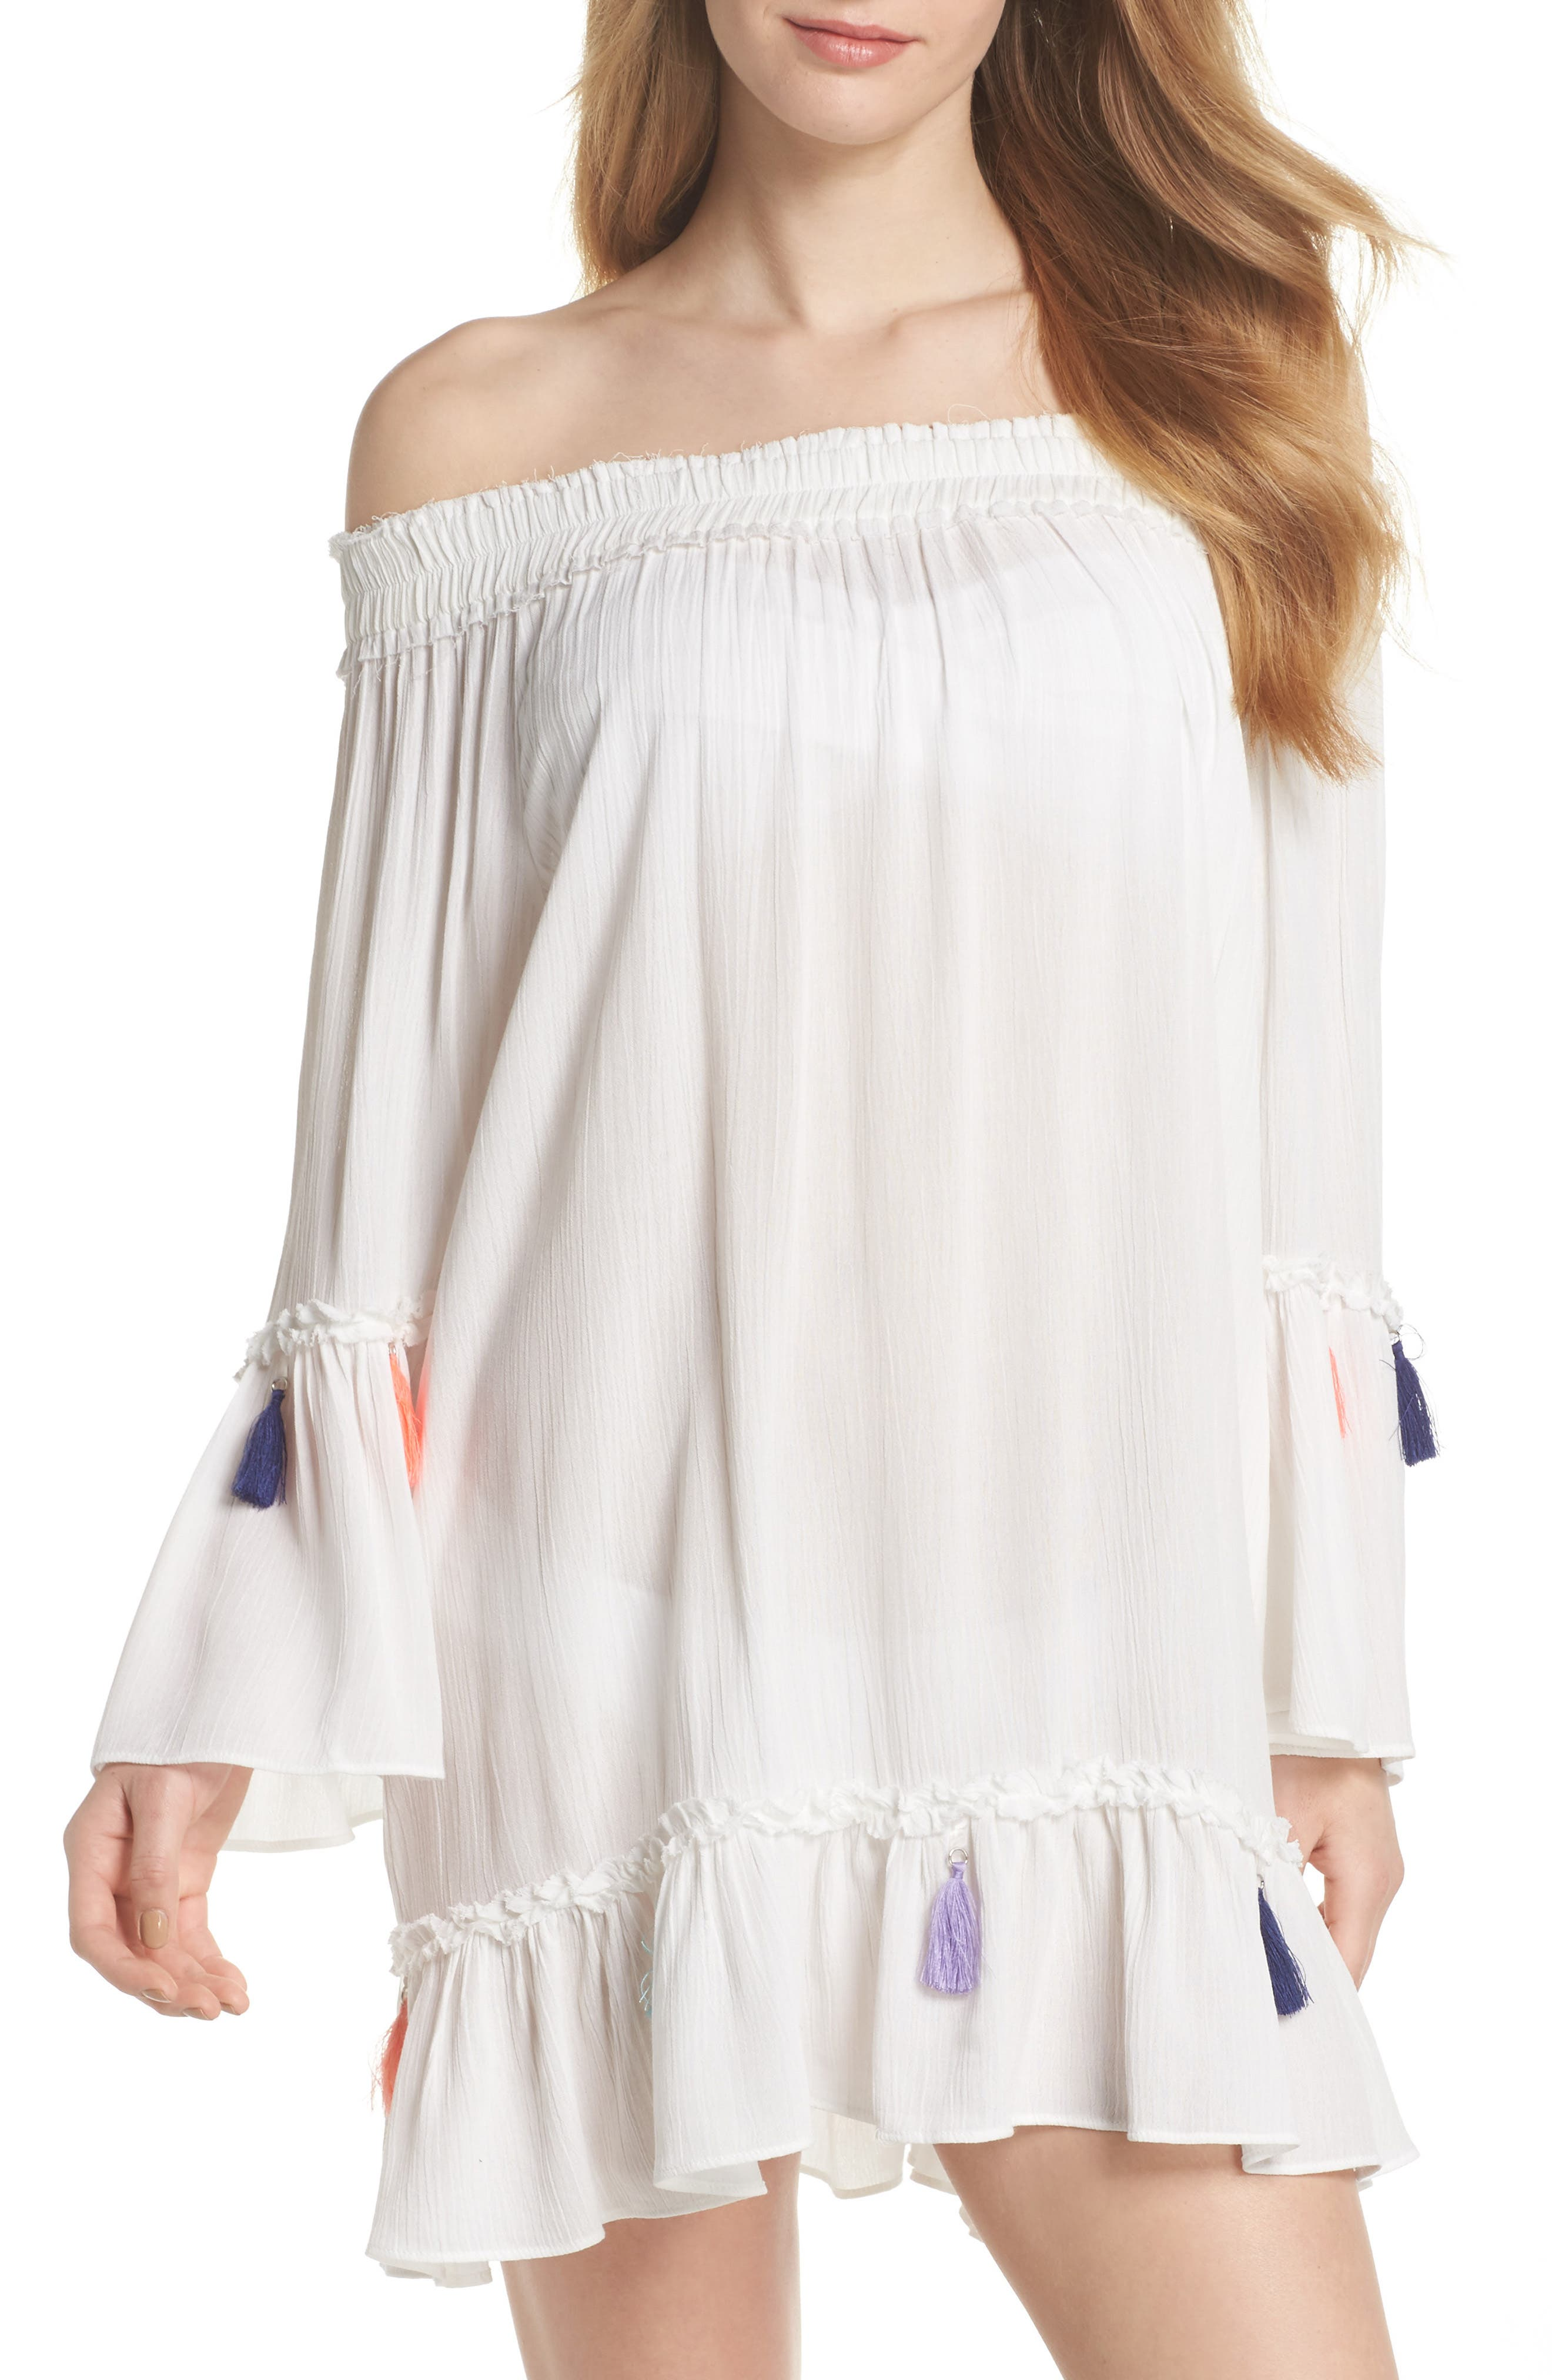 Tassel Cover-Up,                         Main,                         color, White